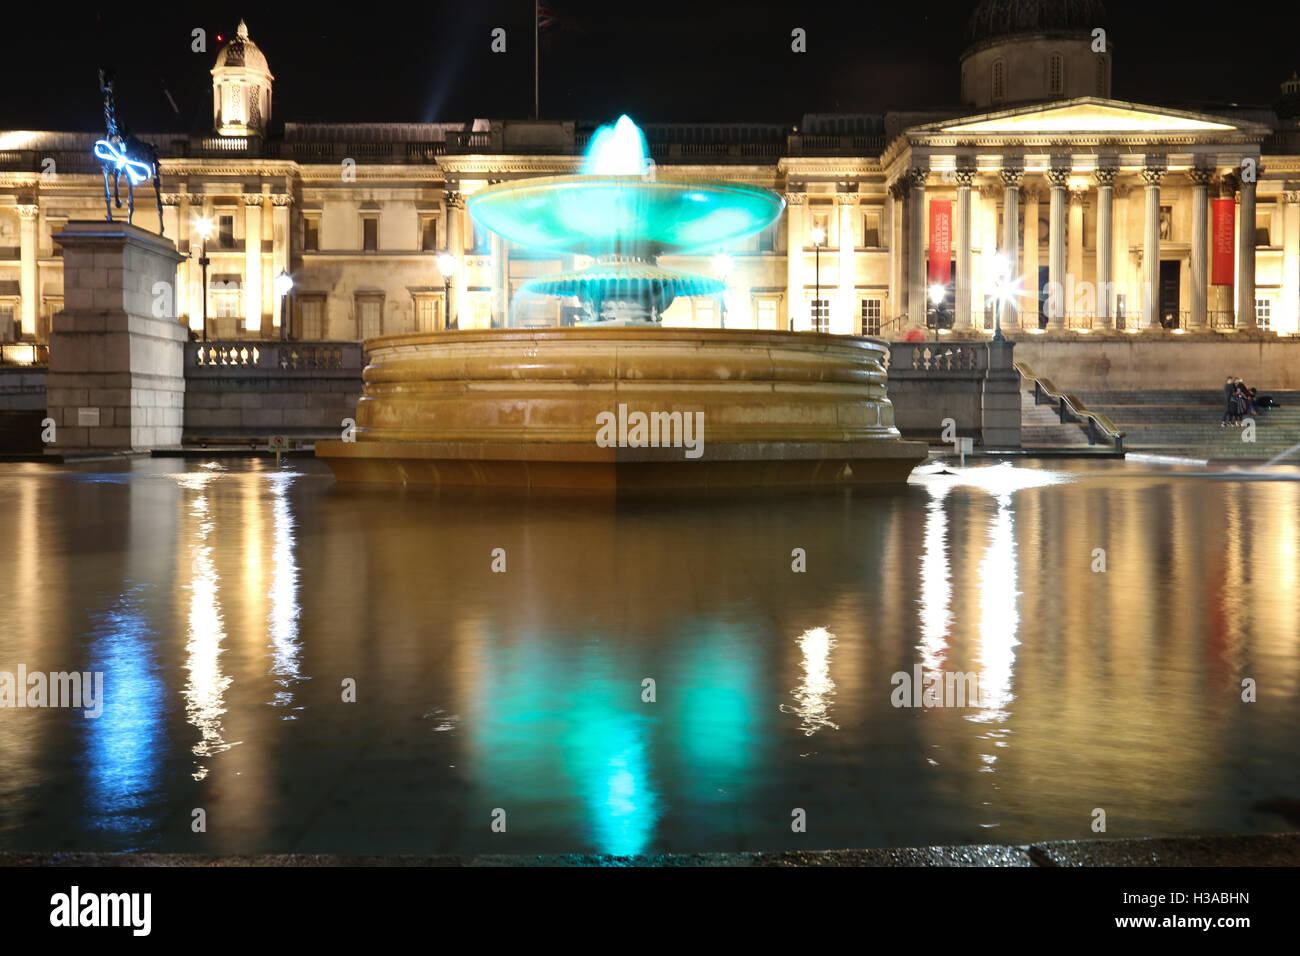 Trafalgar Square and the National Gallery in London at night, with lights and reflections on the fountain surface. - Stock Image